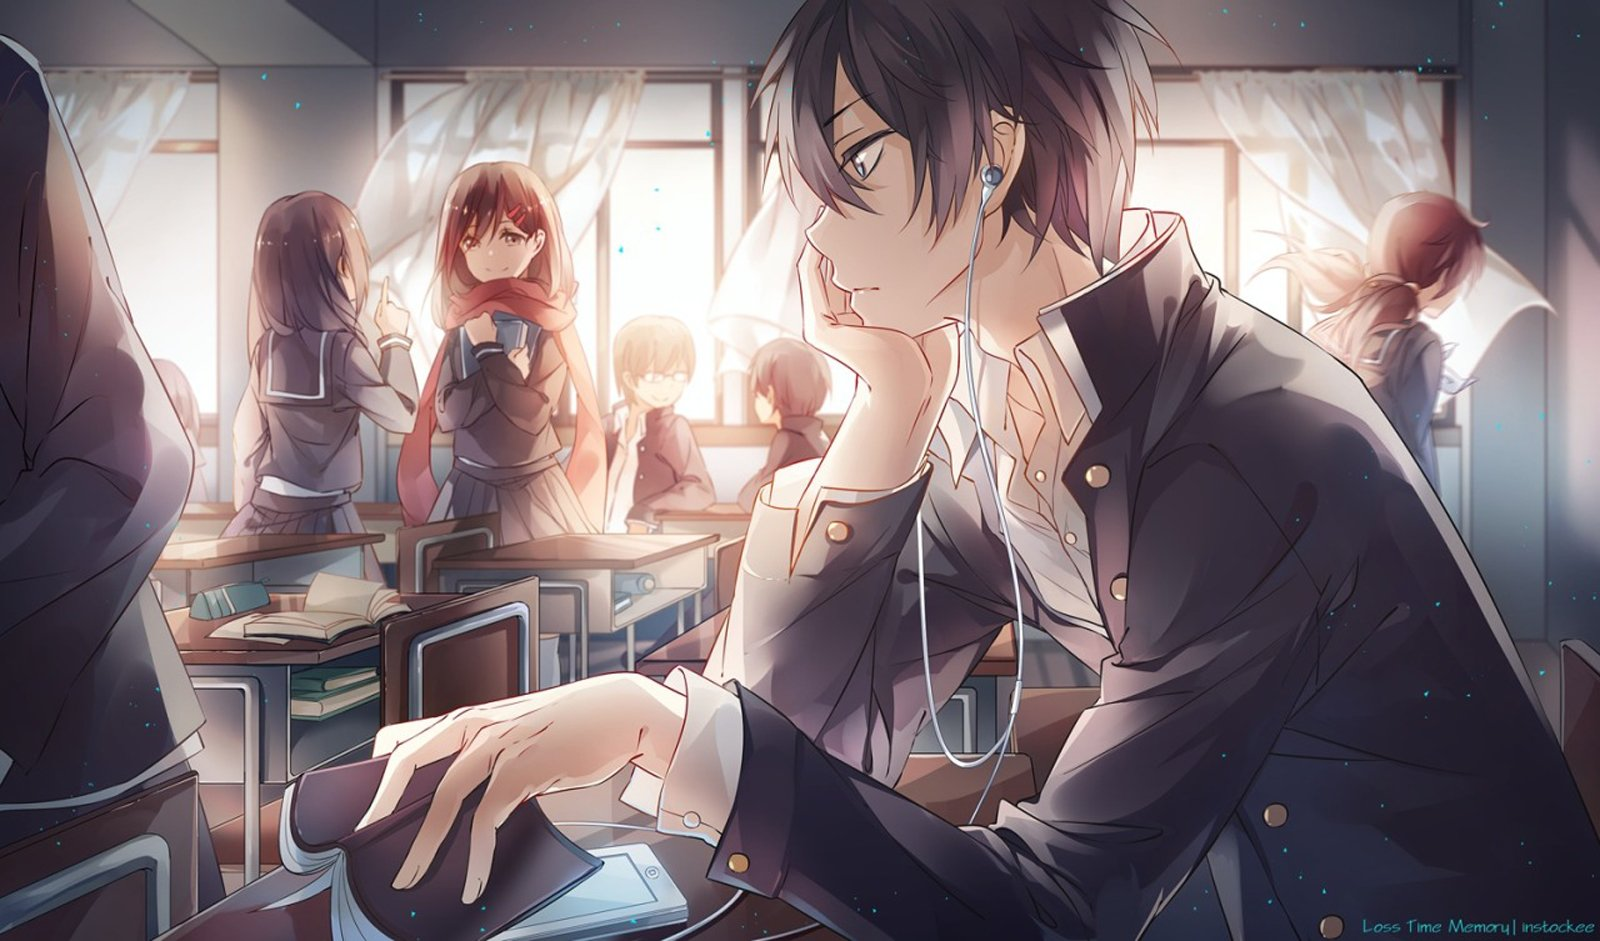 School Girl Boy Uniform Listen Music Friend Group Book Class Wallpaper